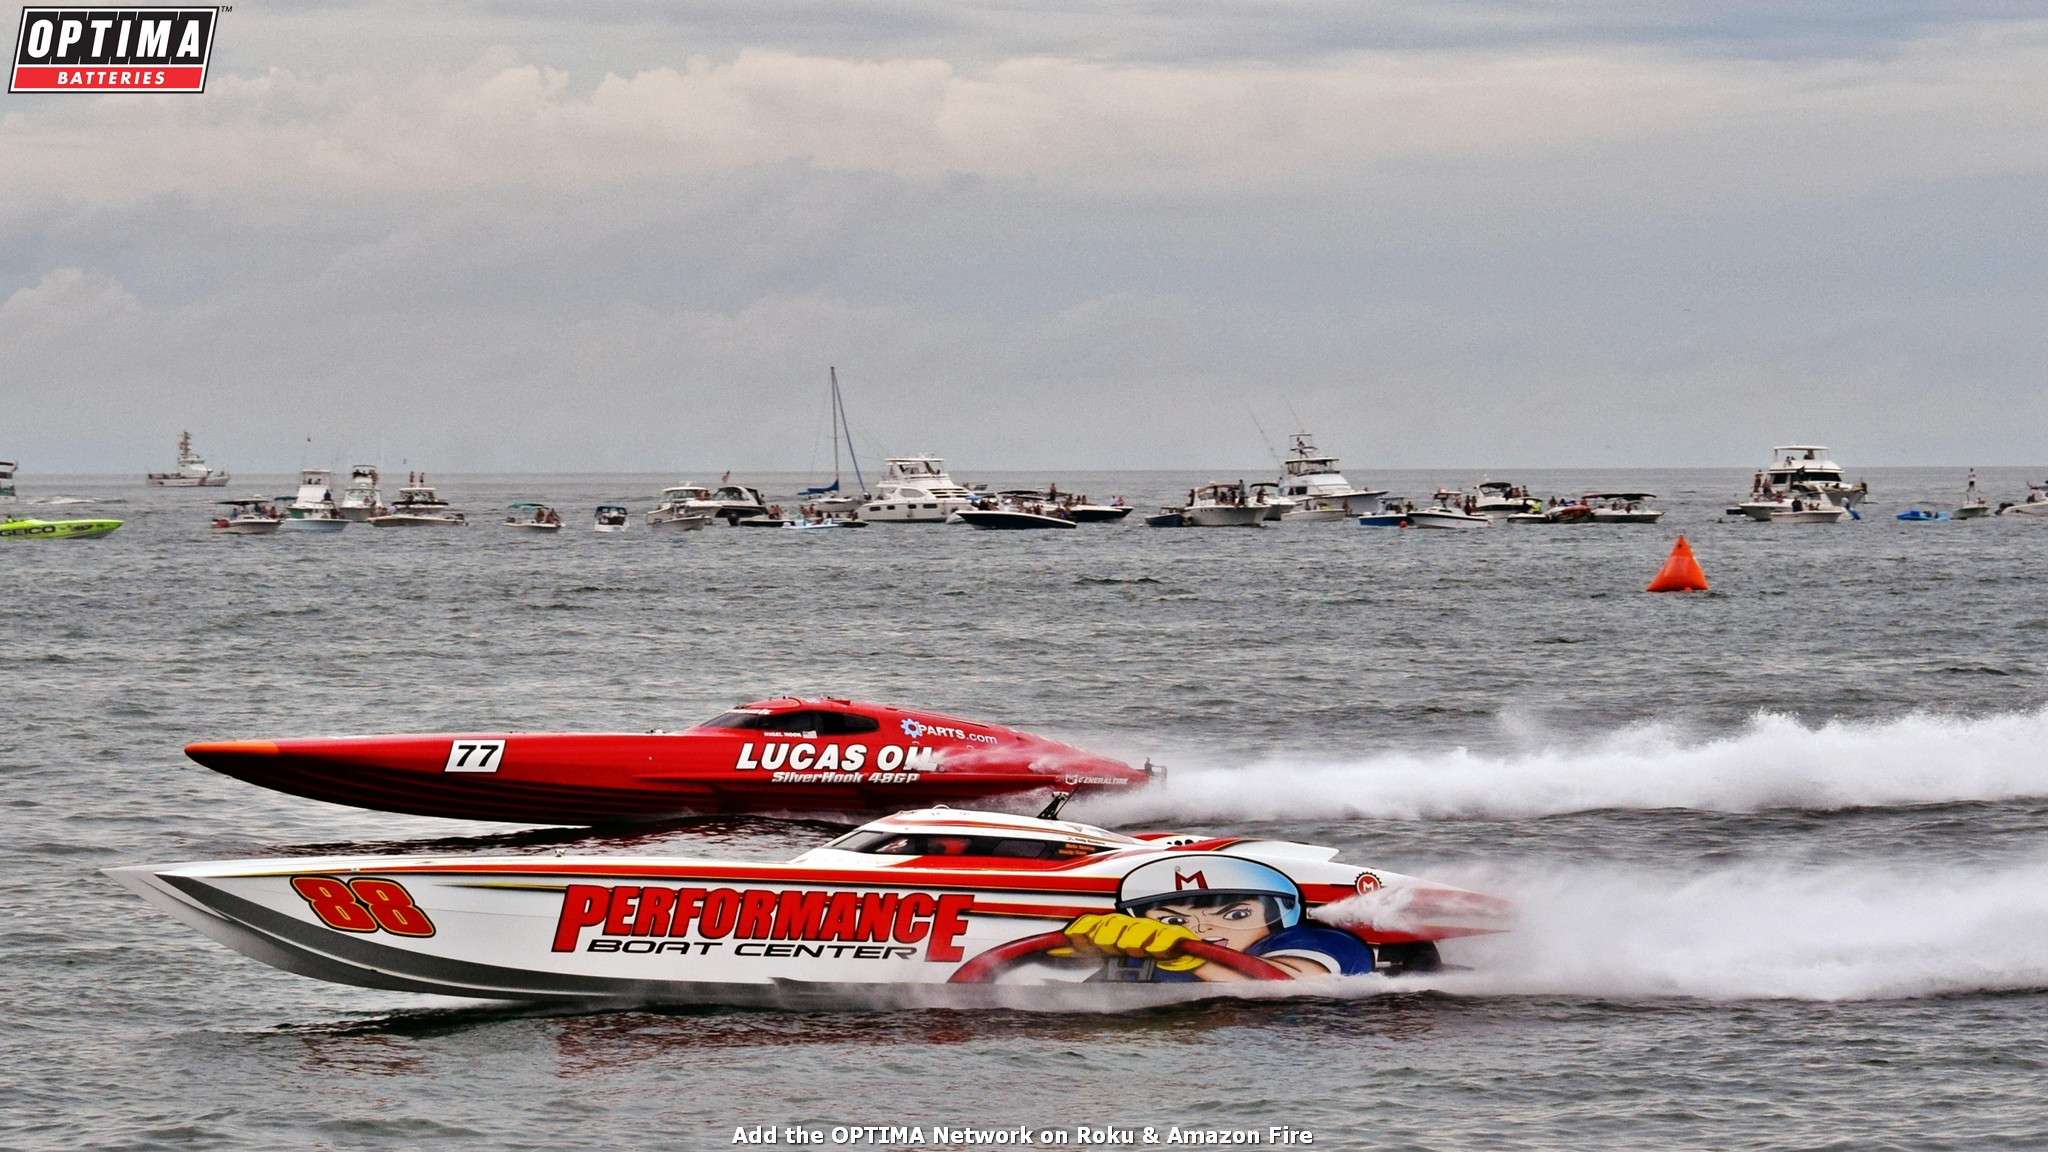 Clearwater_SpeedRacer_Photos_offshore-powerboats-Superboats-2015